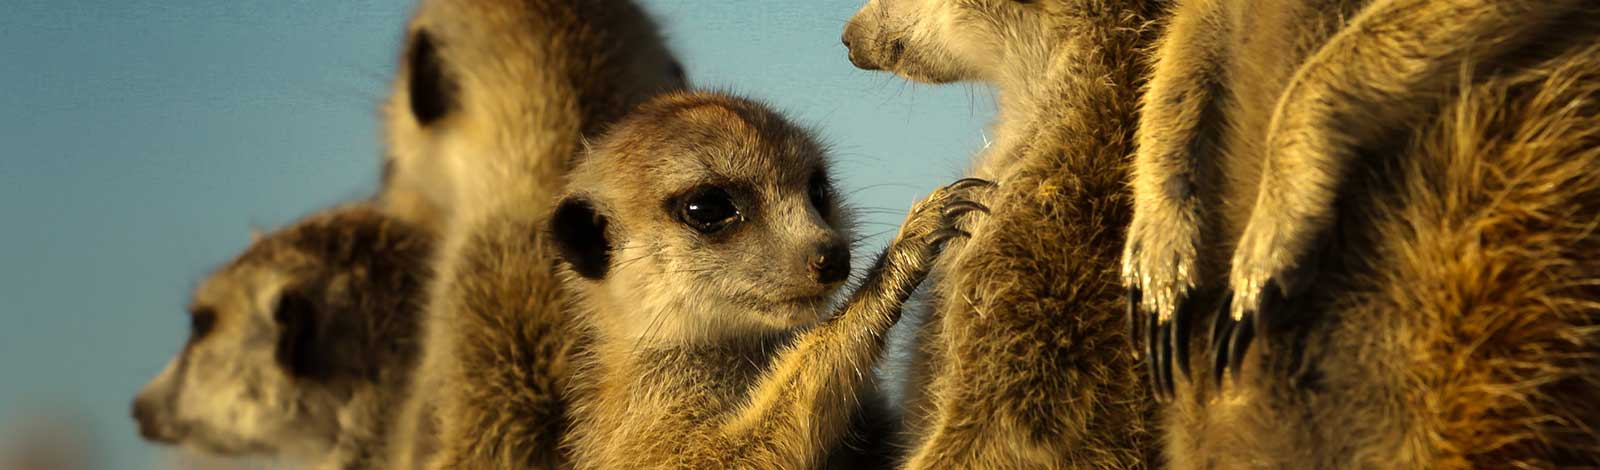 SliderMeerkat